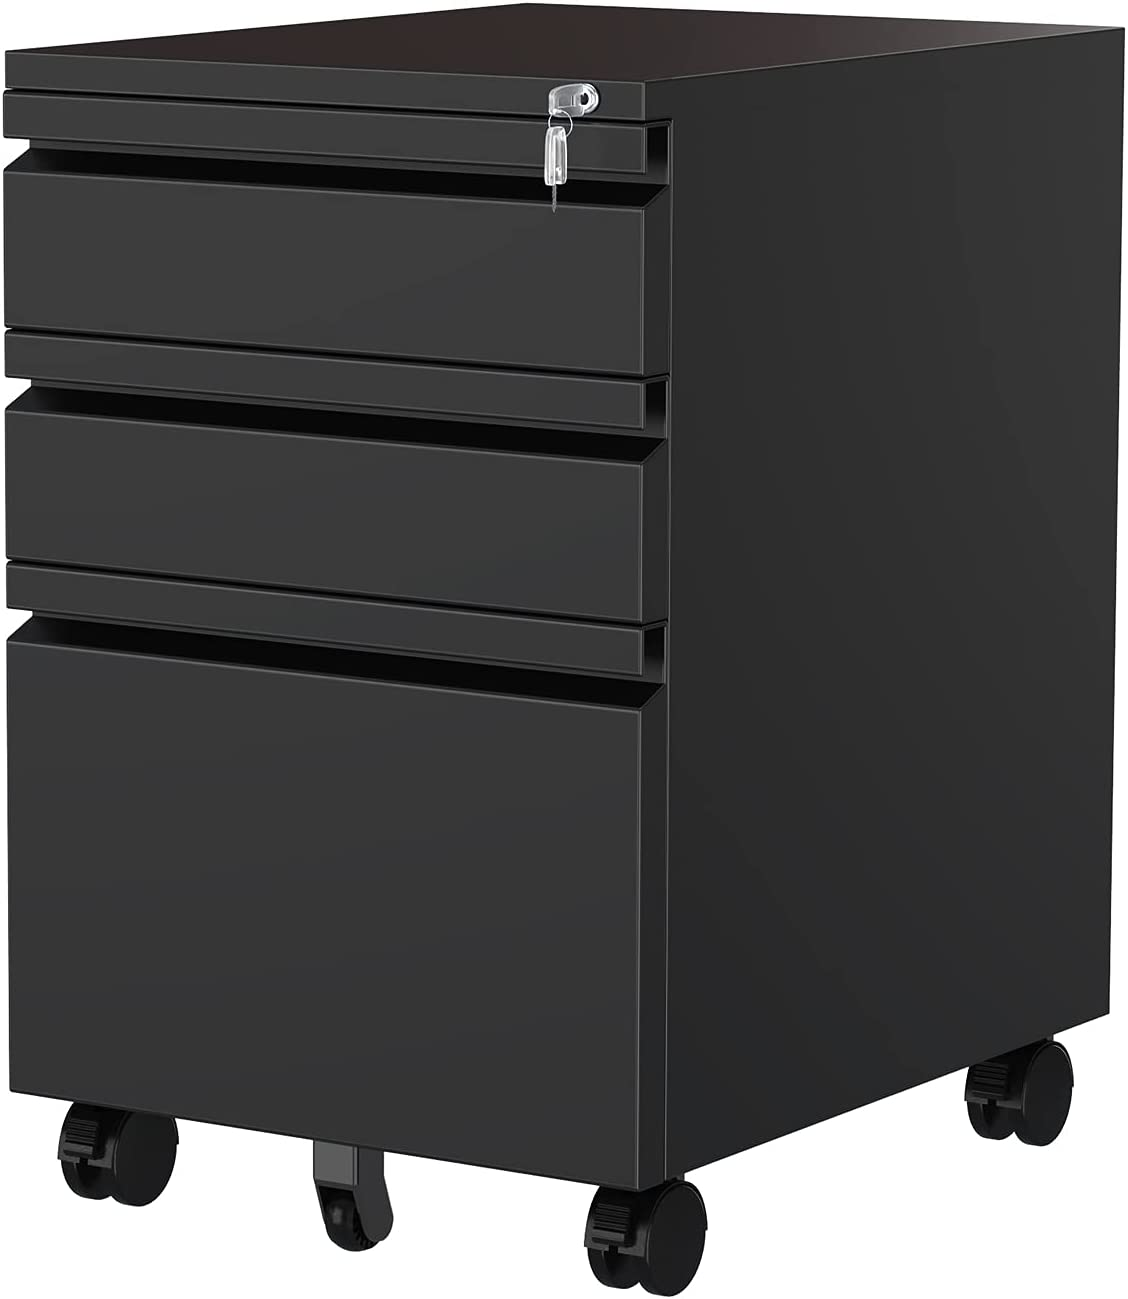 MIIIKO 3 Drawer File Cabinet, Metal Filing Cabinet with Lock Rolling Wheels, Office Storage Cabinet Under Desk,Fireproof Deep Drawers for Hanging Legal Letter Fill, Full Assembled Except Casters